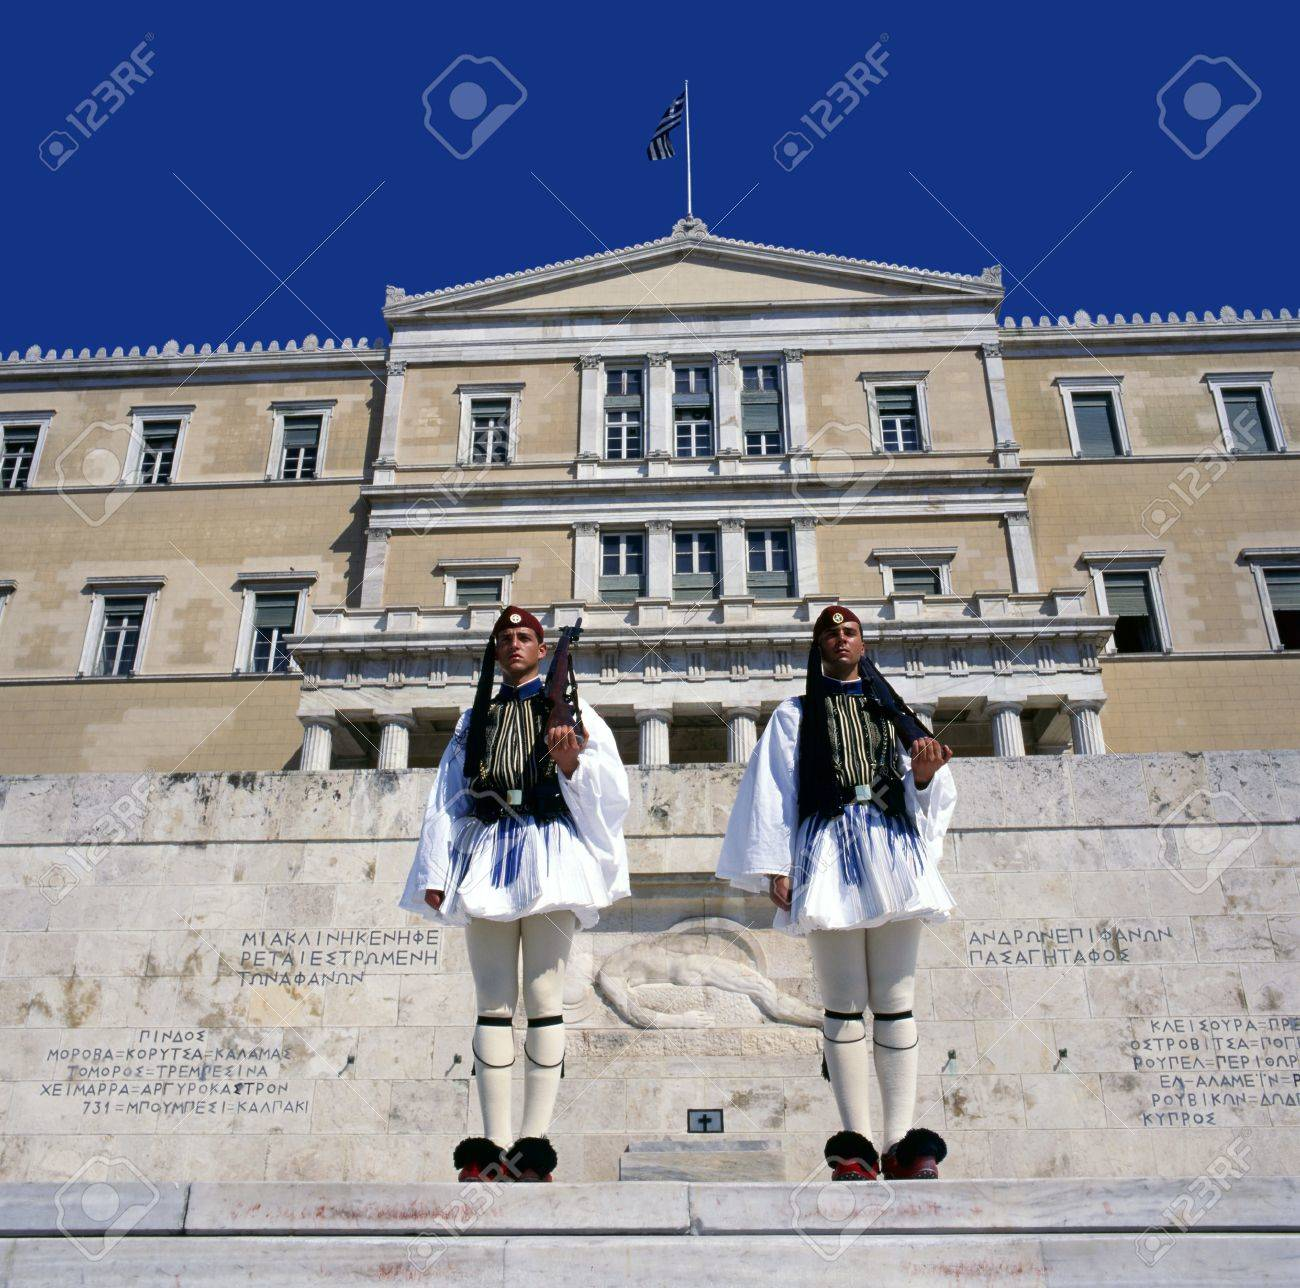 Evzones, the presidential ceremonial guards, guarding the Tomb of the Unknown Soldier at the Hellenic Parliament Building Stock Photo - 10483972